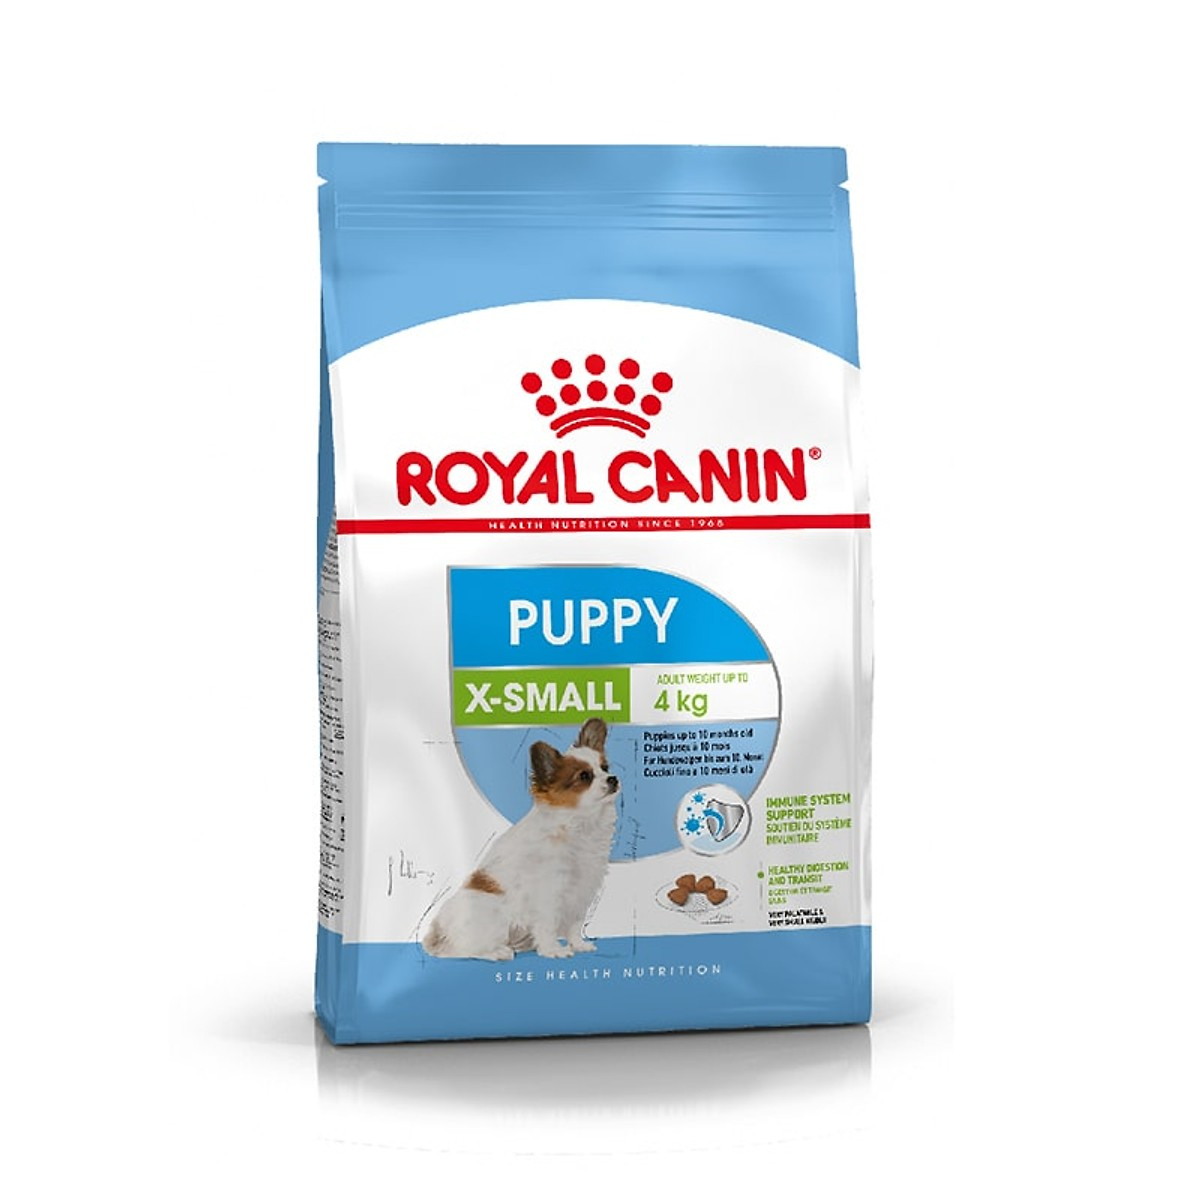 ROYAL CANIN XSMALL PUPPY 1.5kg